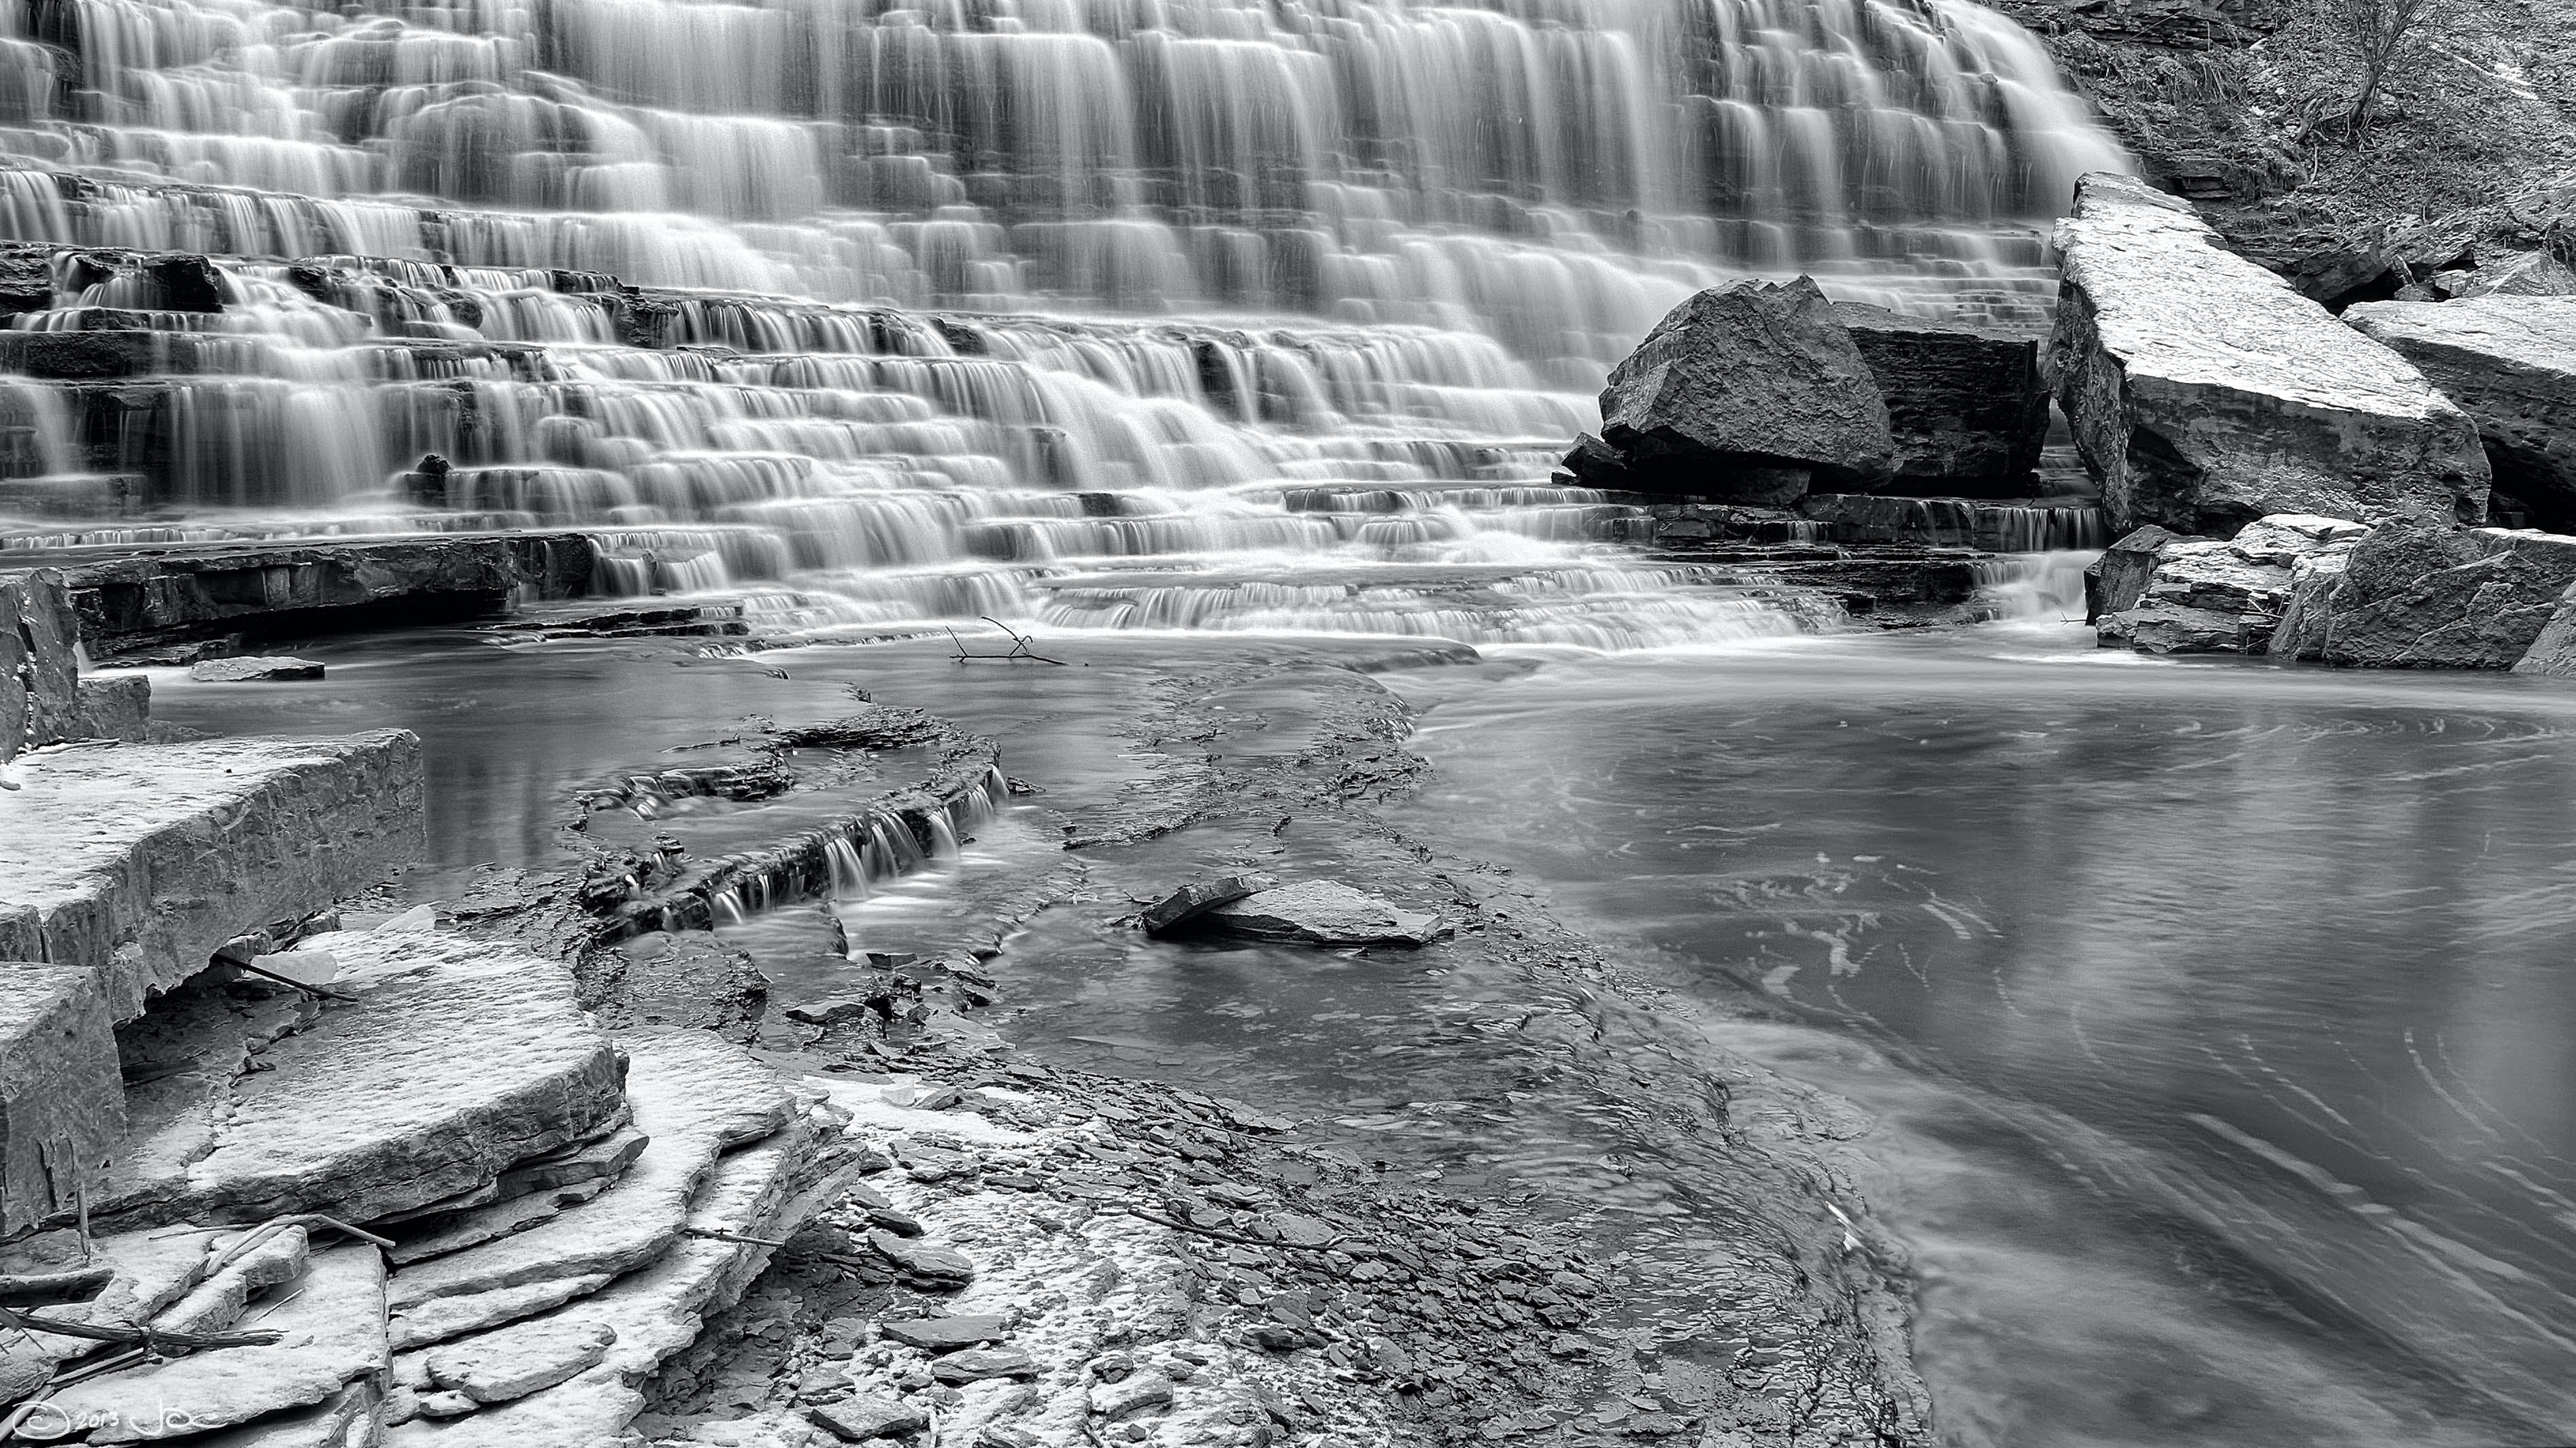 Grayscale Time Lapse Photo of Waterfalls